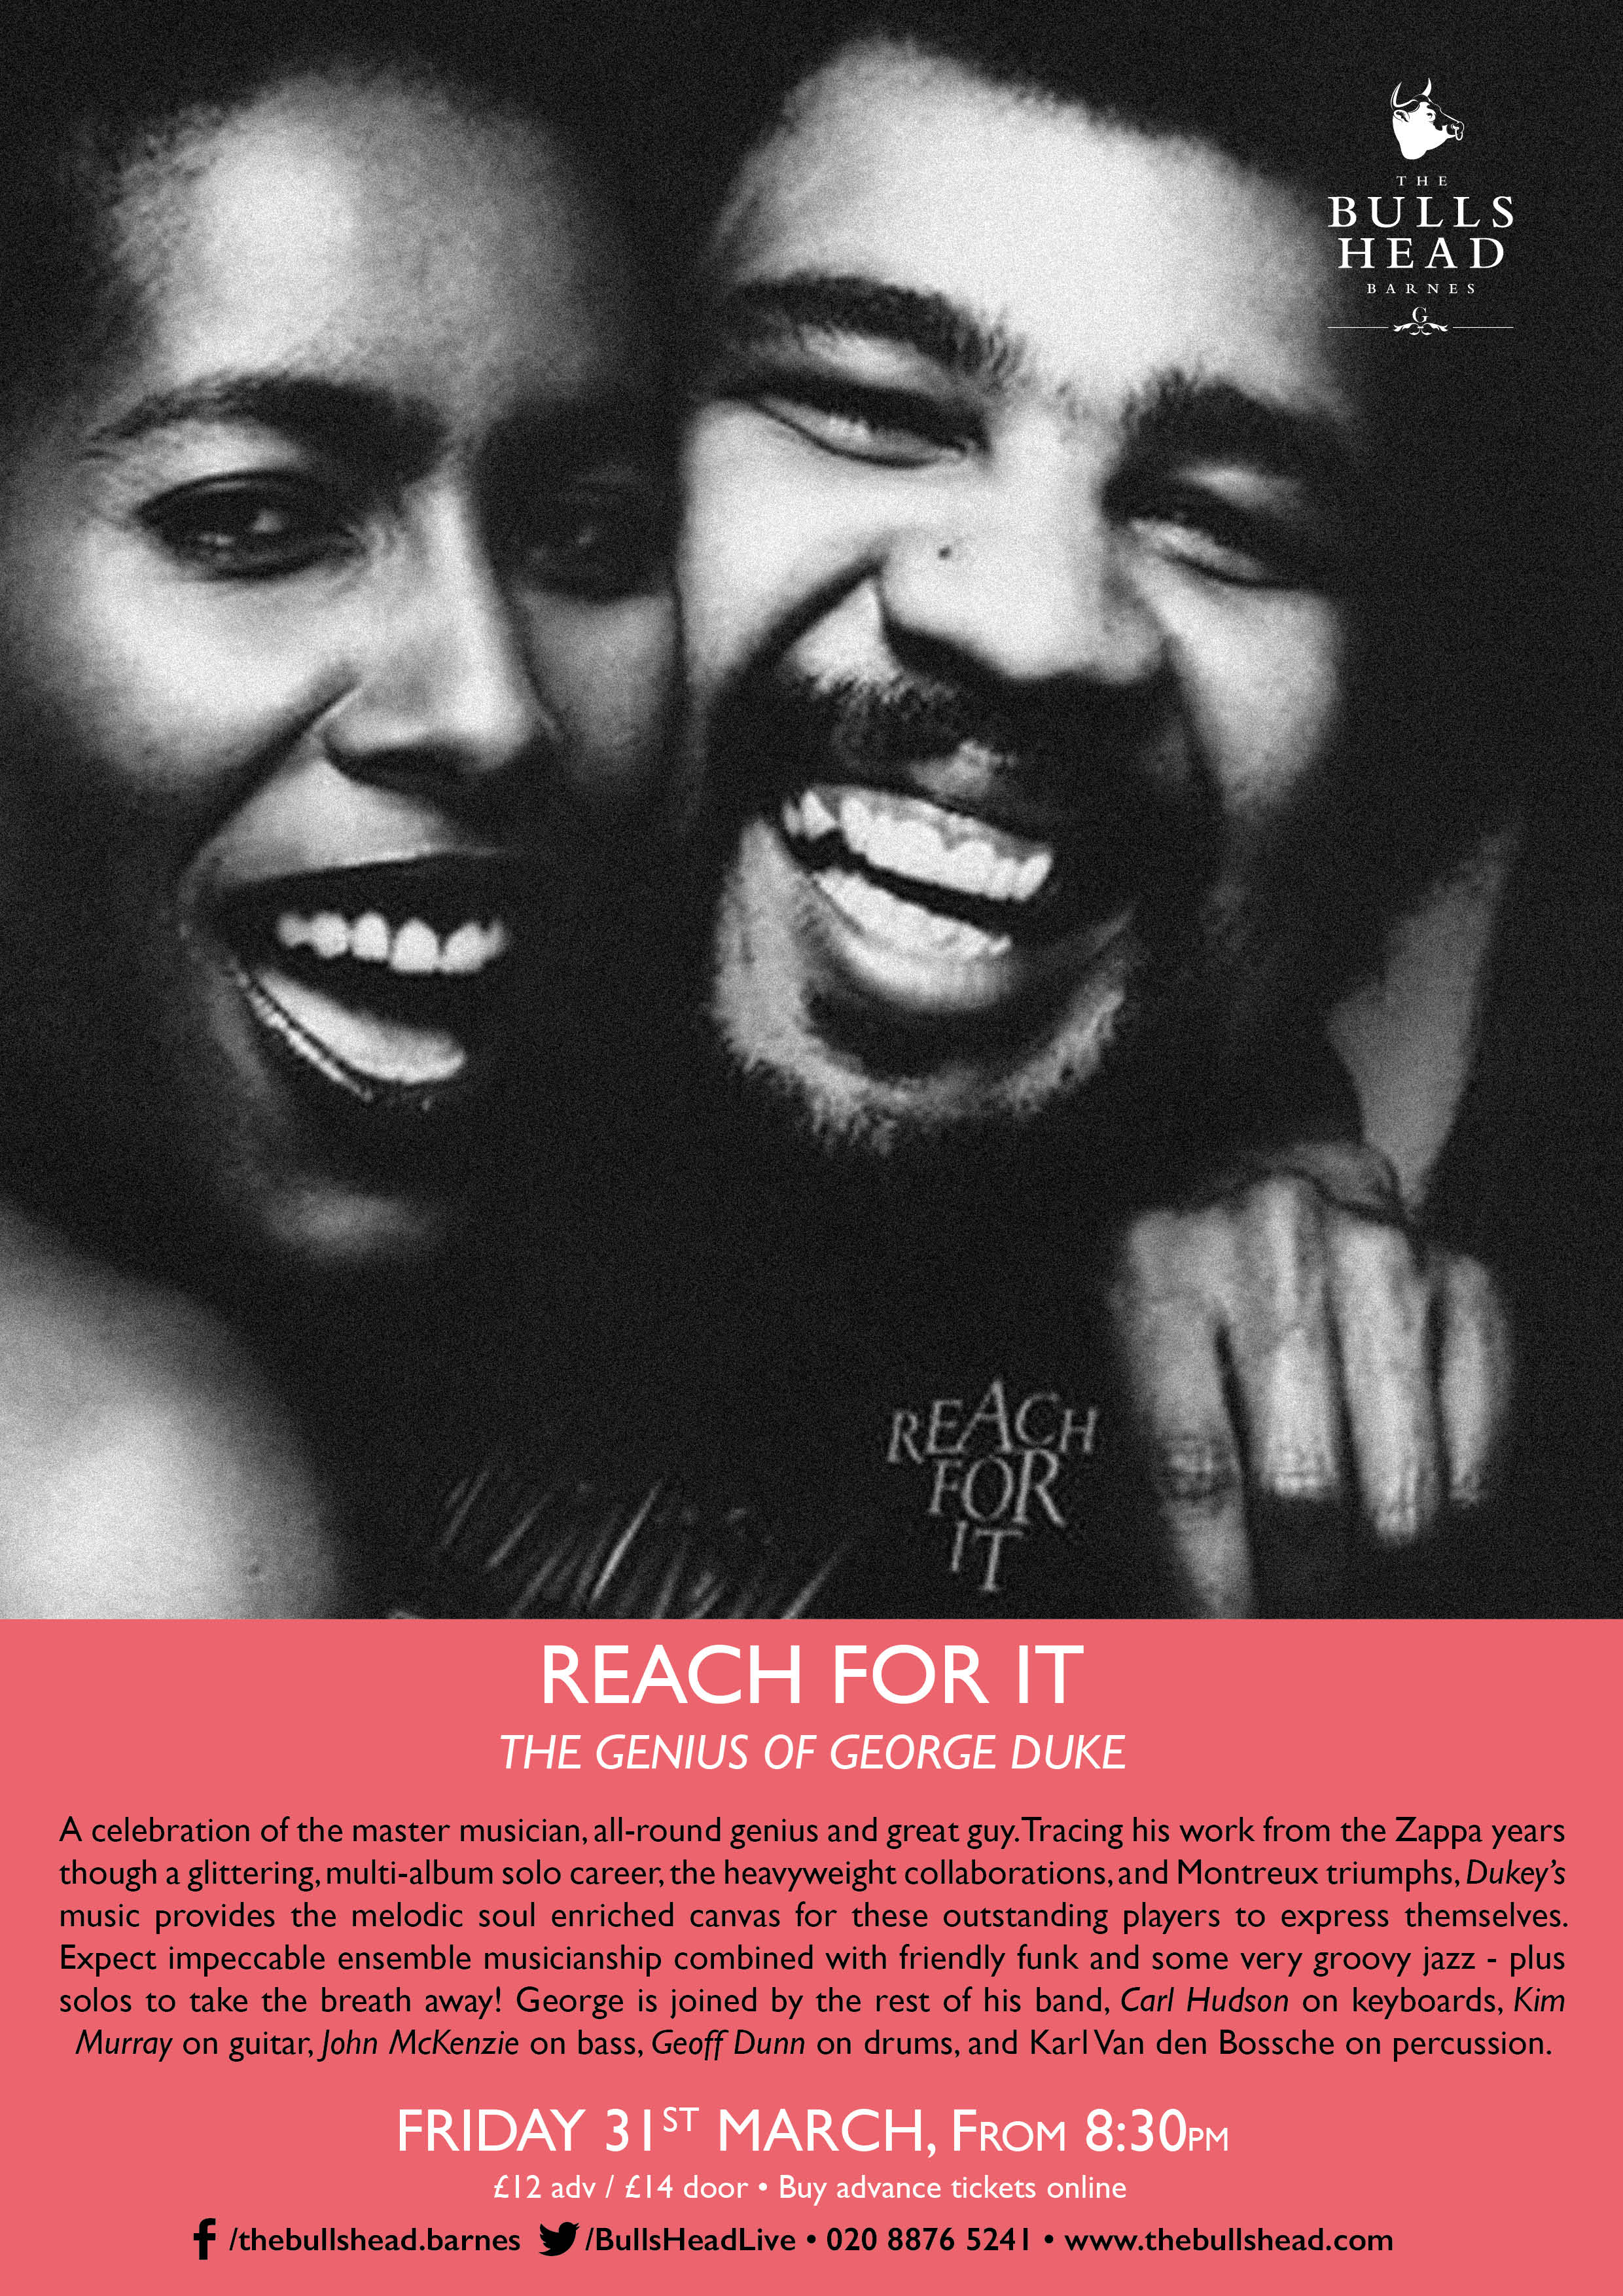 Reach for It - The Genius of George Duke